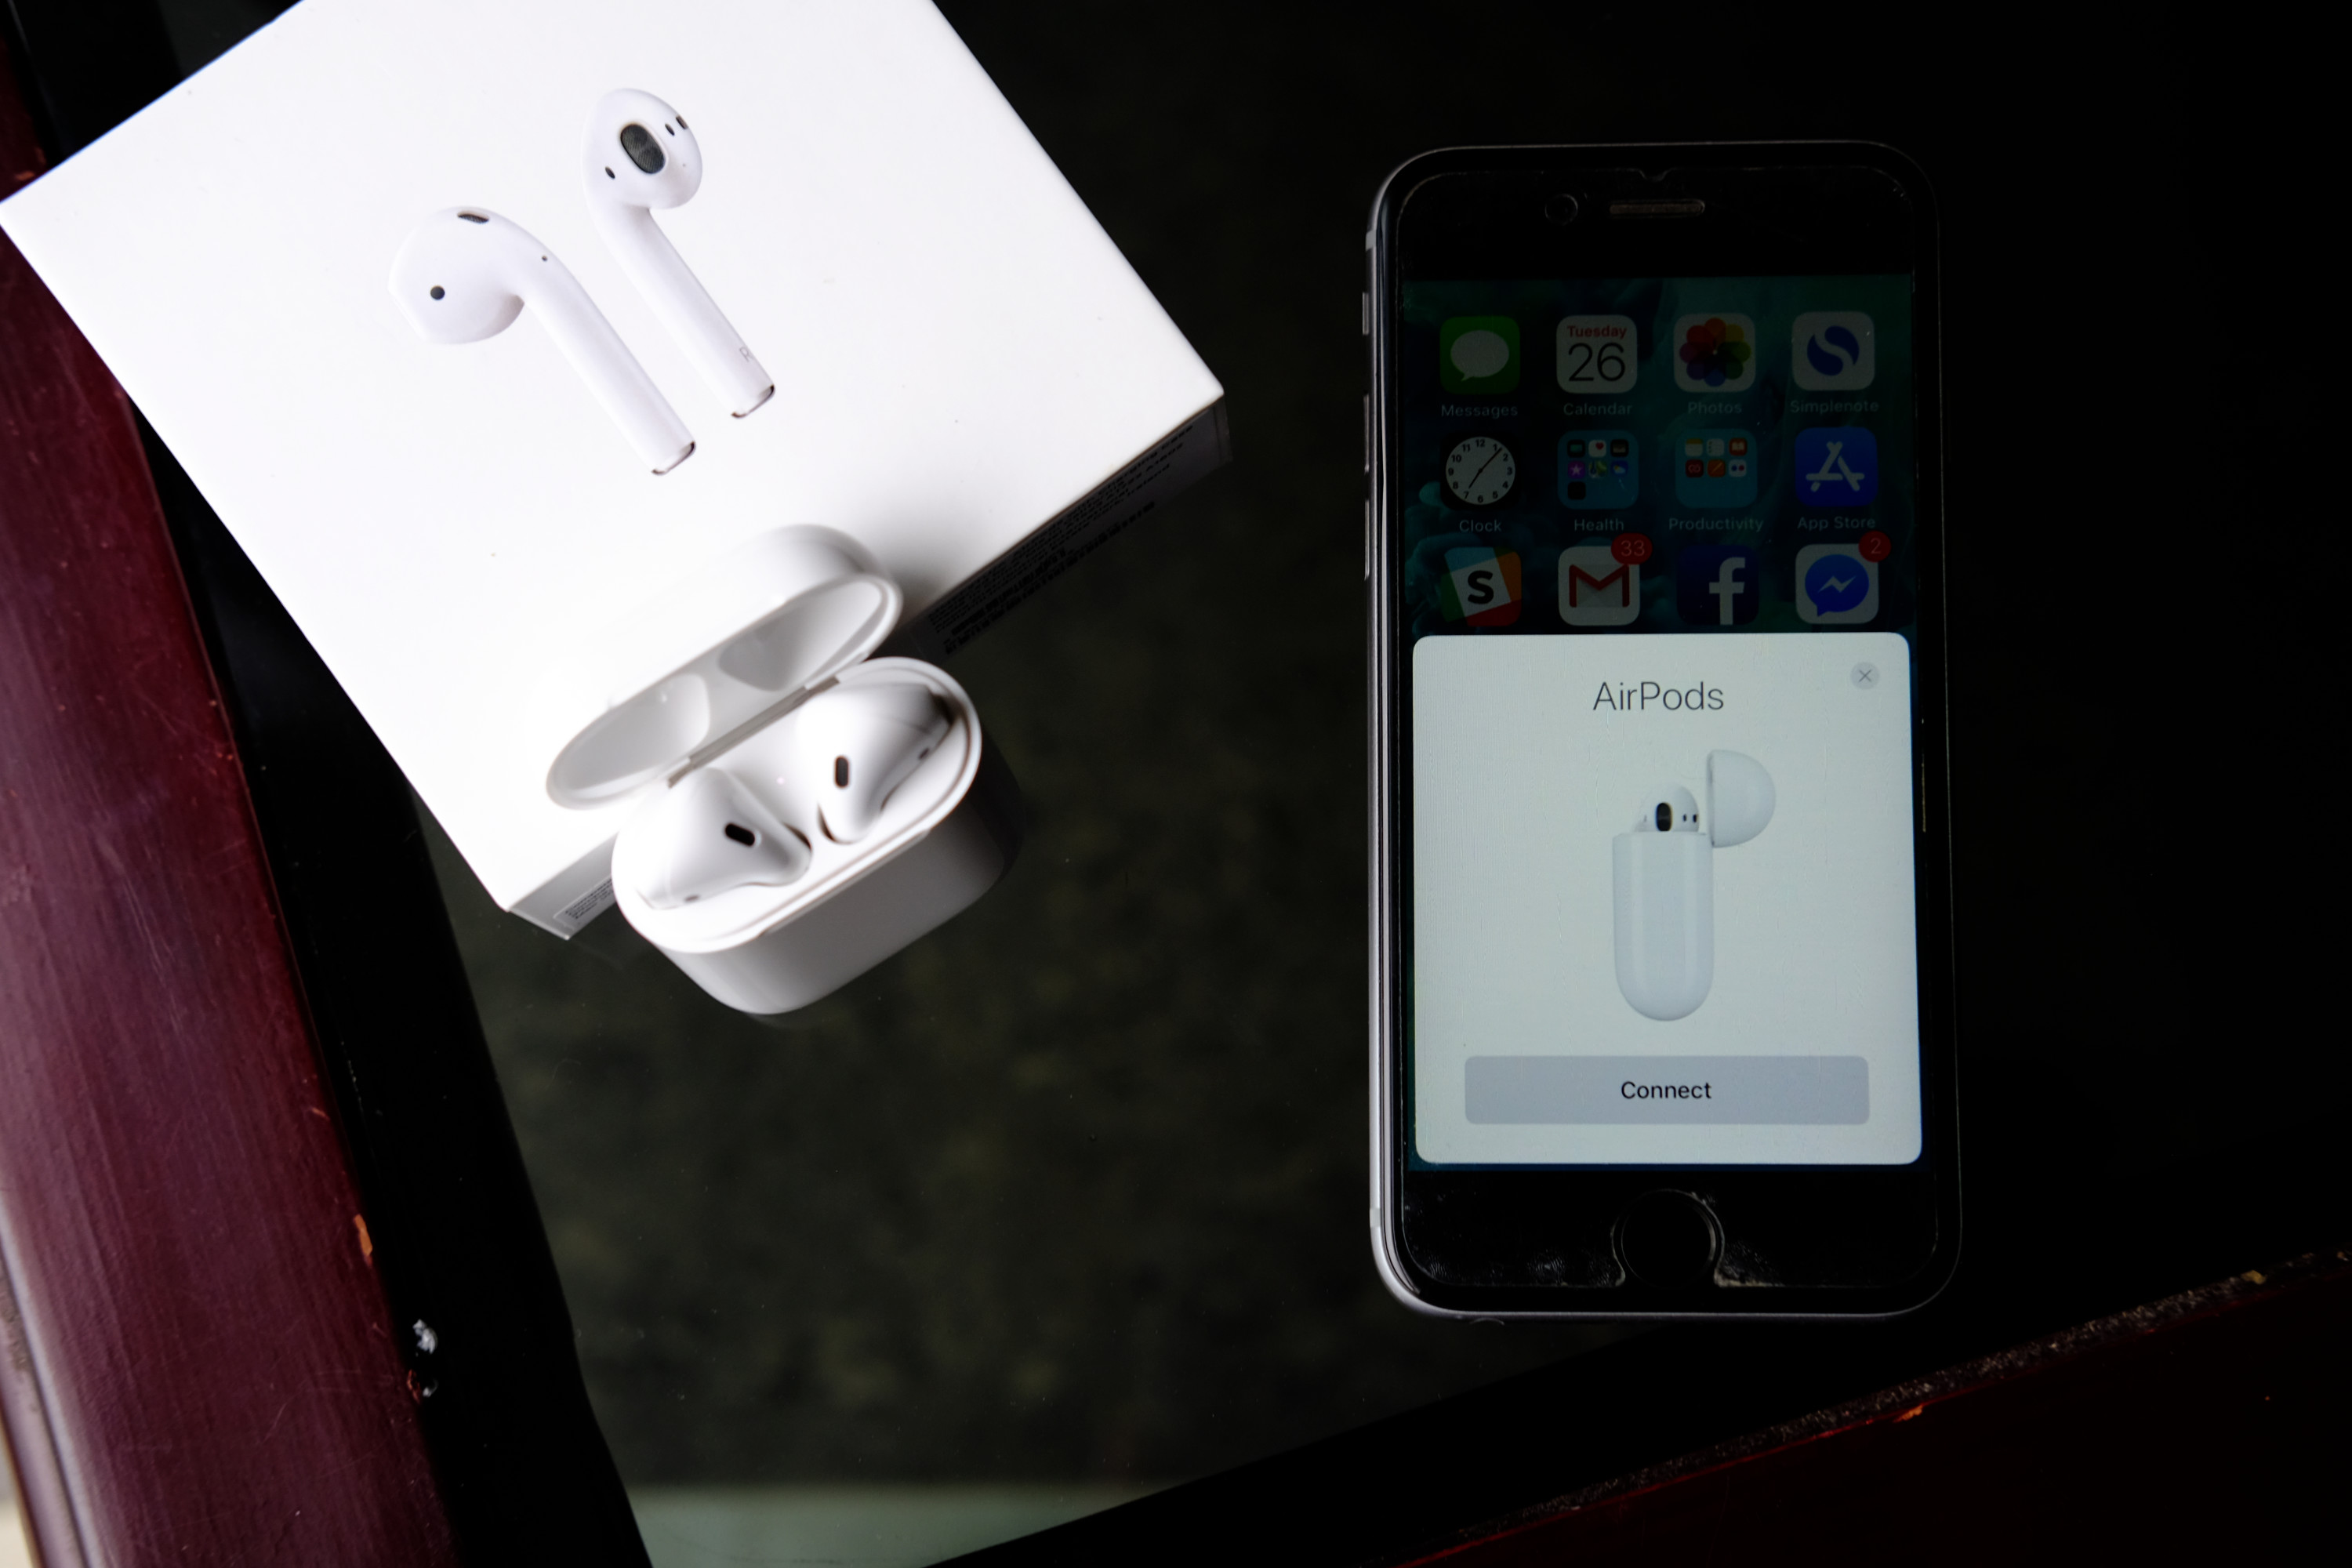 apple airpods pairing